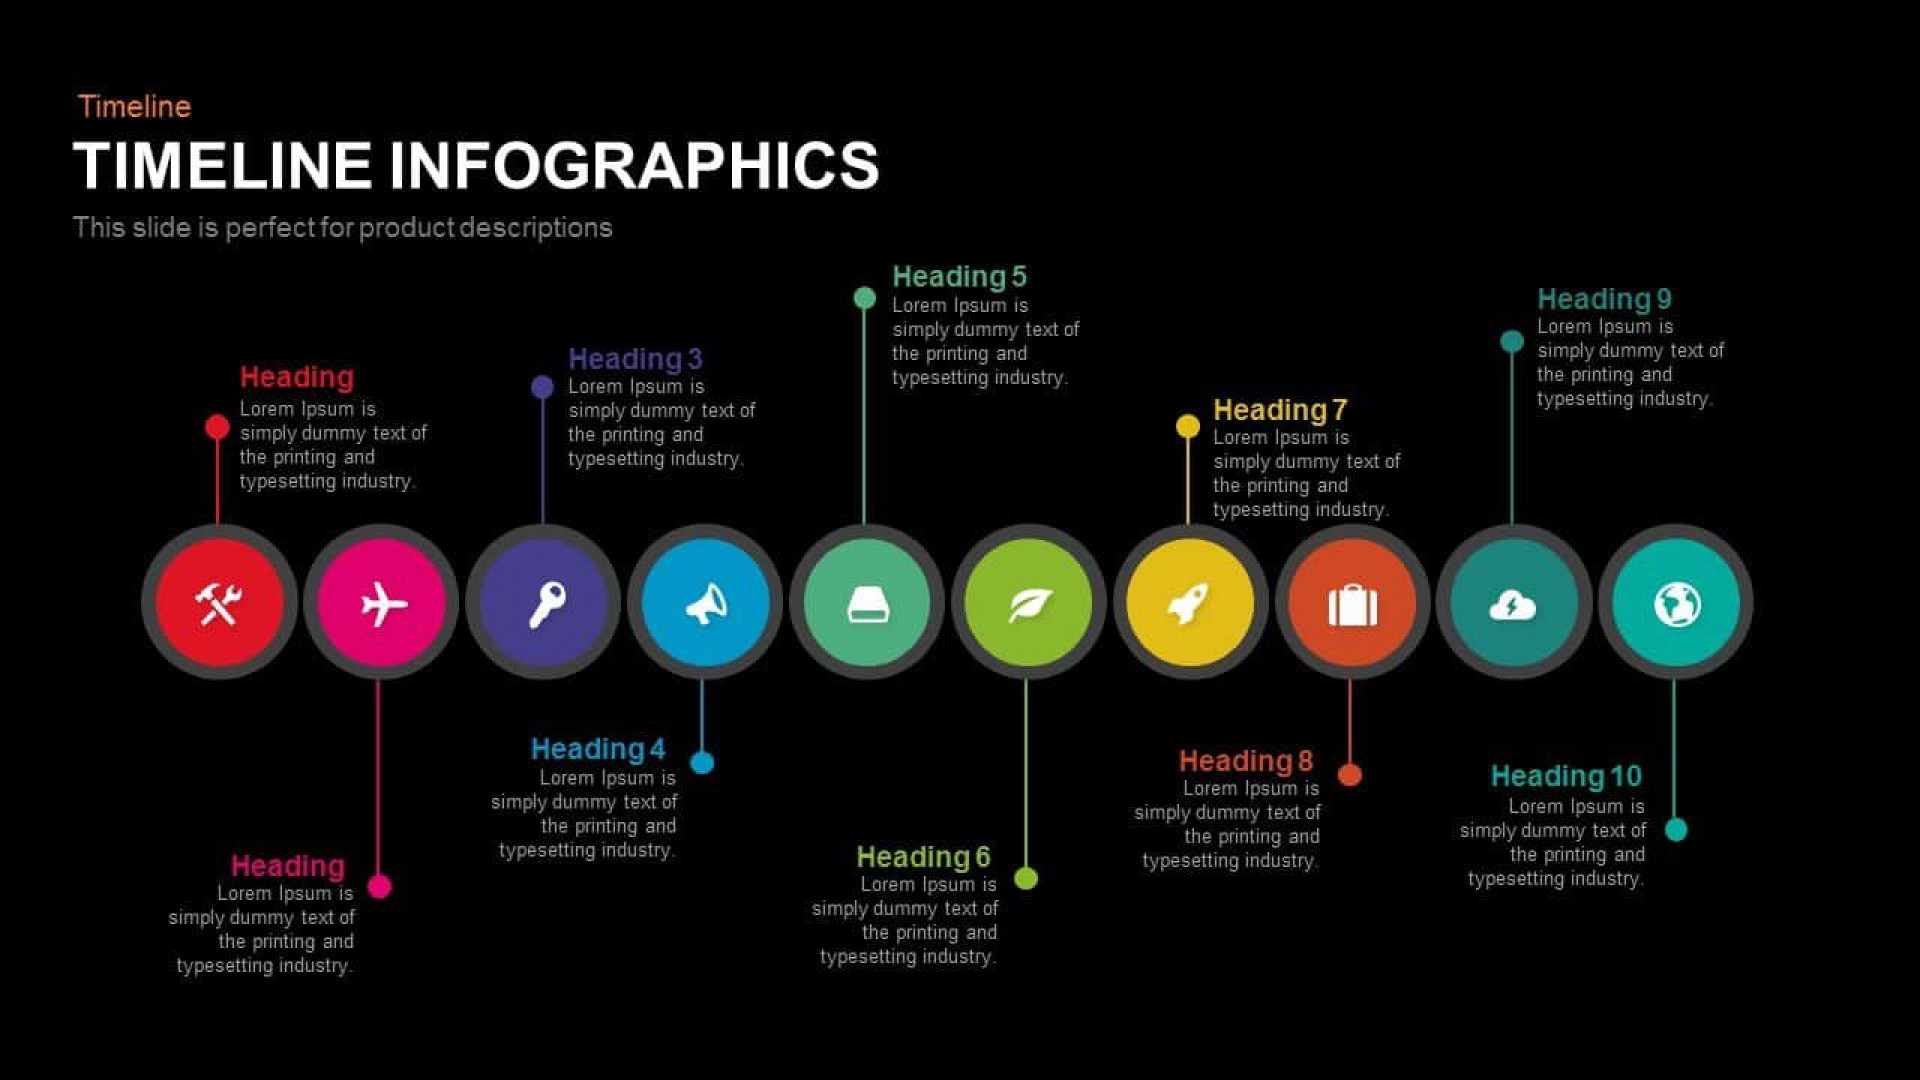 009 Stunning Timeline Infographic Template Powerpoint Download Sample  Free1920